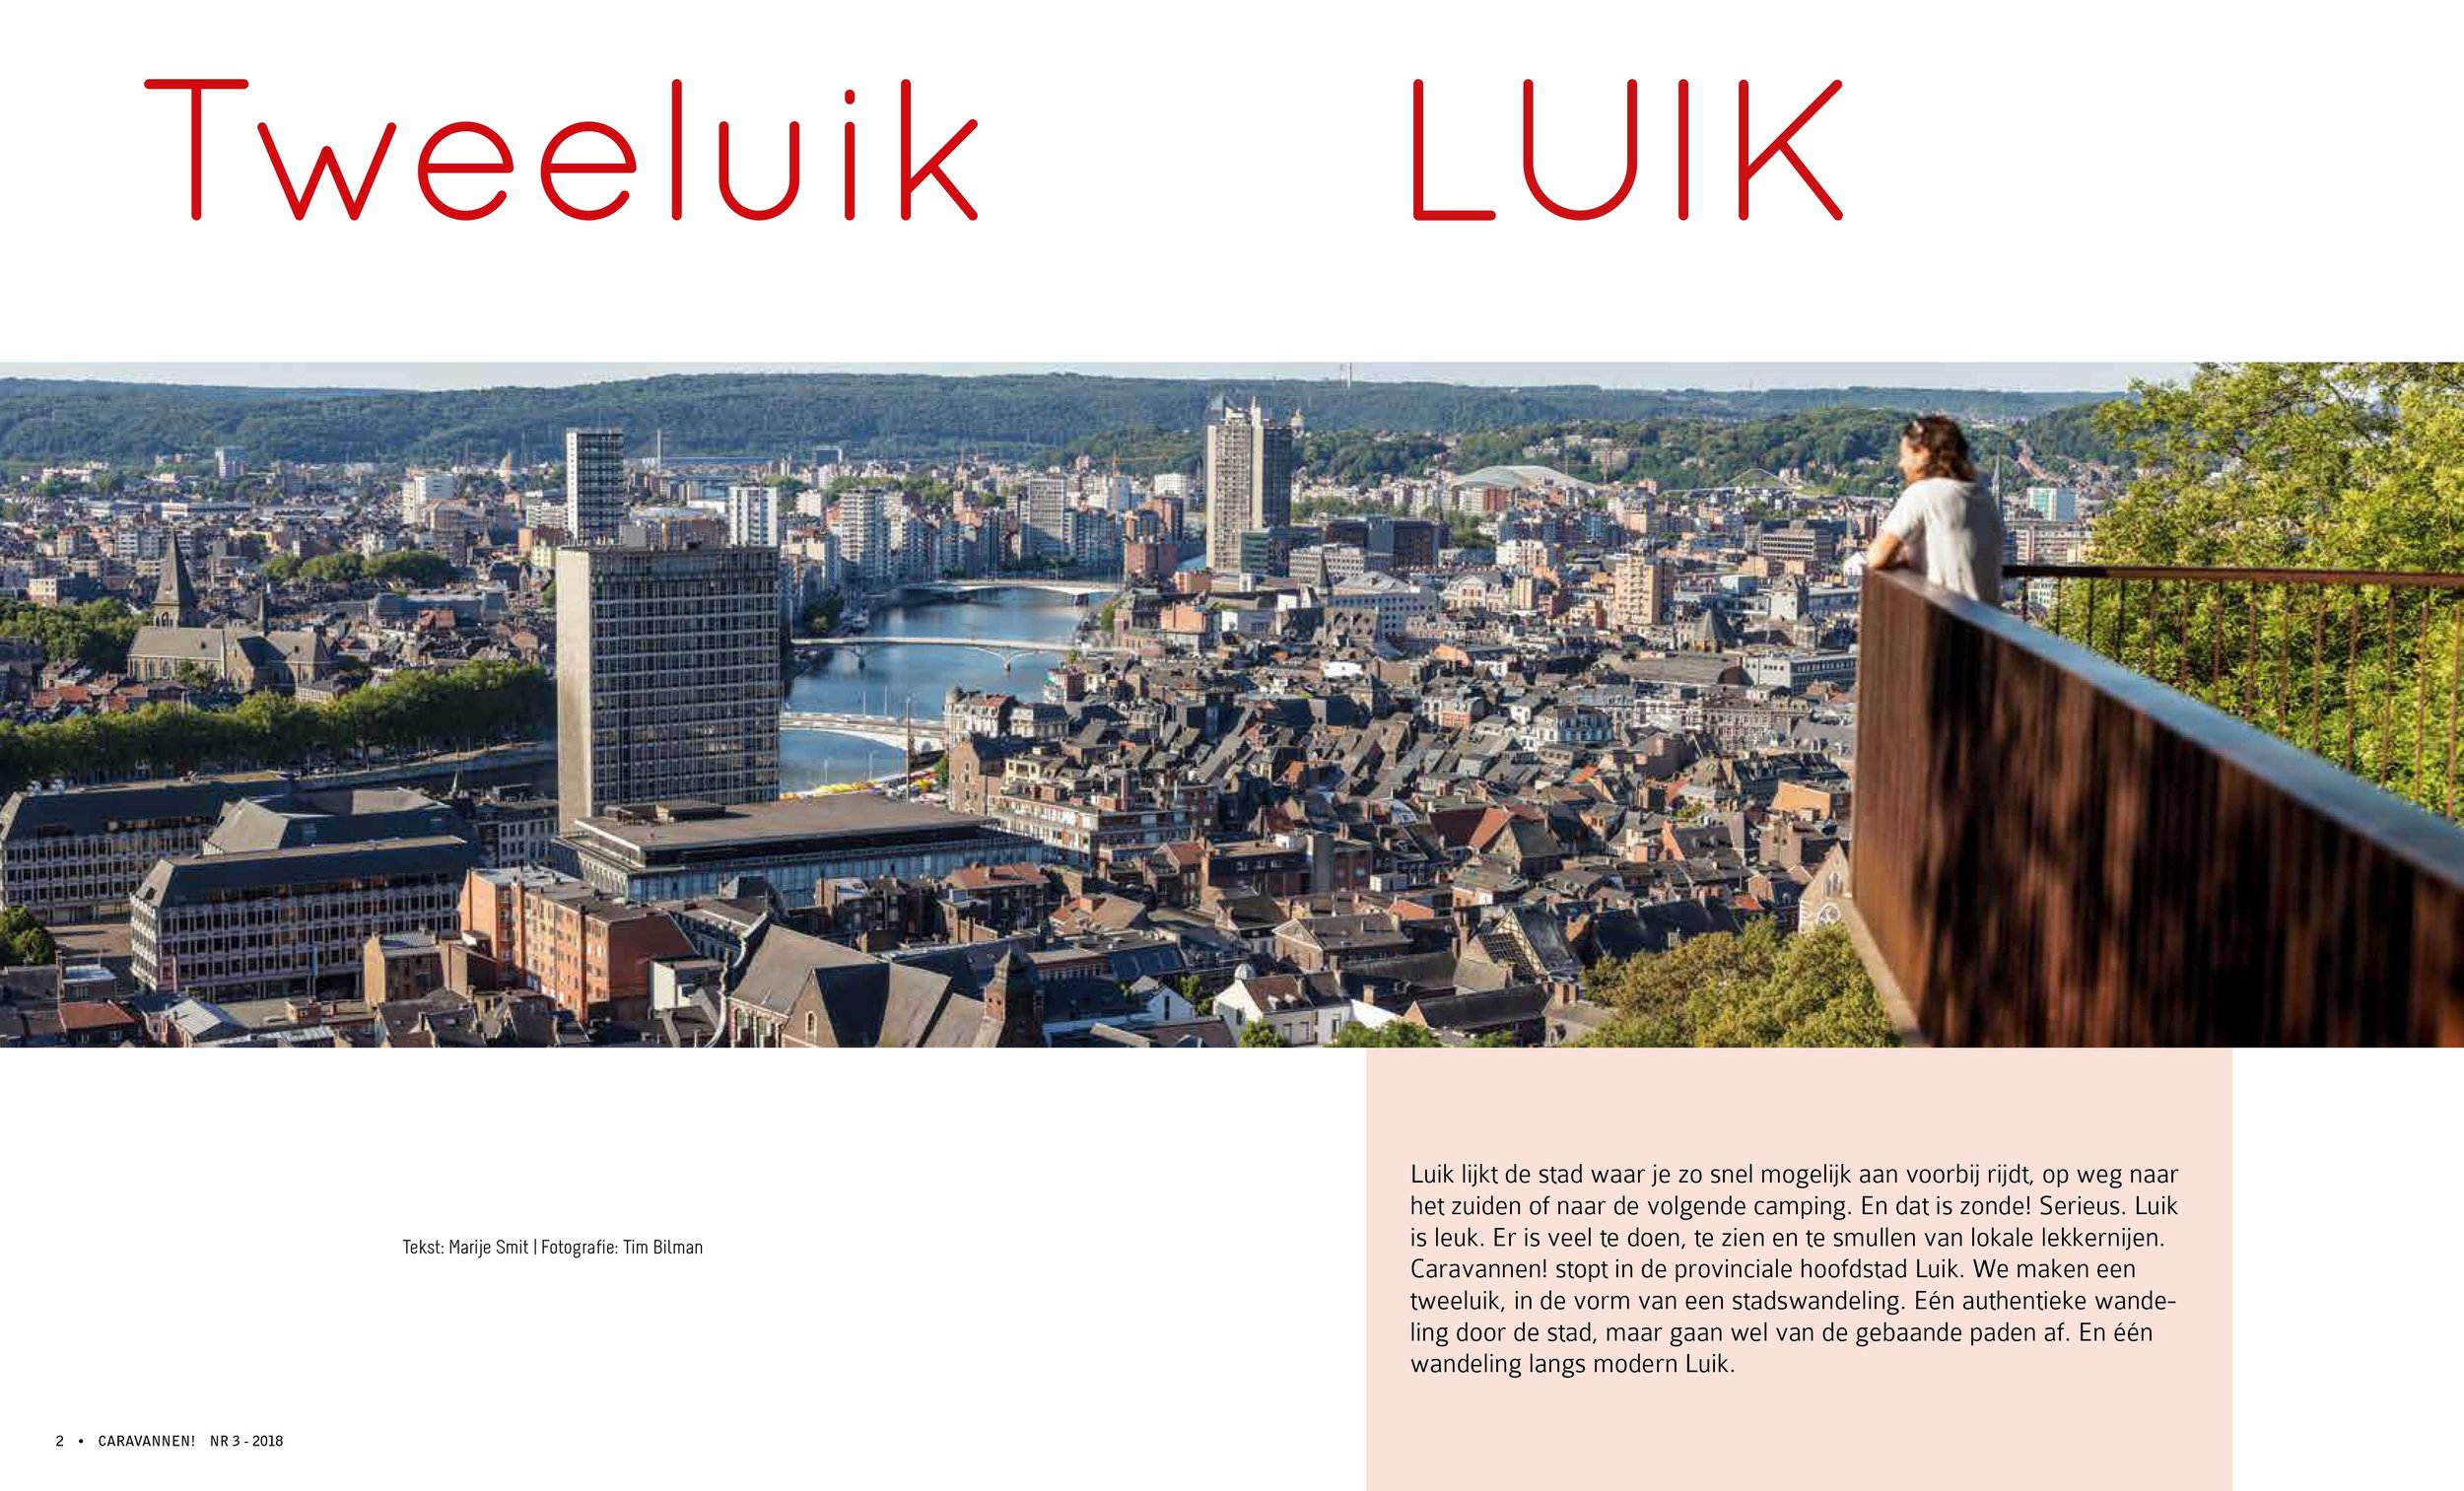 Liege - For the dutch magazine Caravannen! We wrote an article about this modern and upcoming city. Liege is an worthy citytrip location! The article was published in September '18 in Caravannen!.